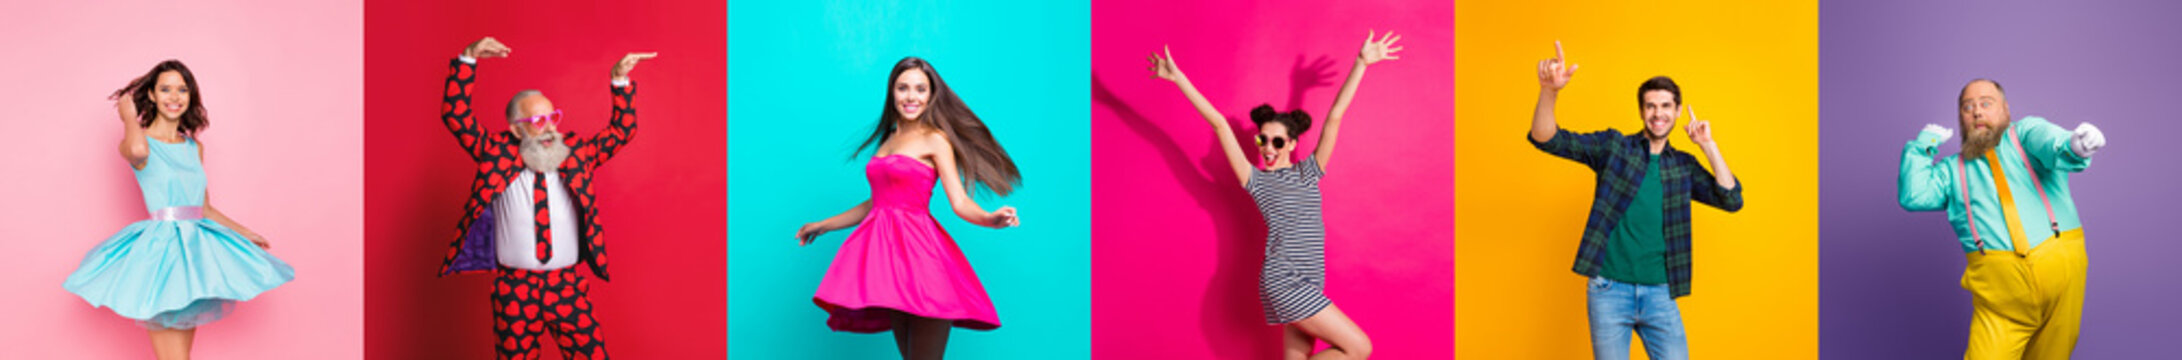 Collage photo six cool funny active modern people diversity fancy ladies hipster guys men good mood discotheque festive clubbers isolated many colors violet teal yellow pink red background